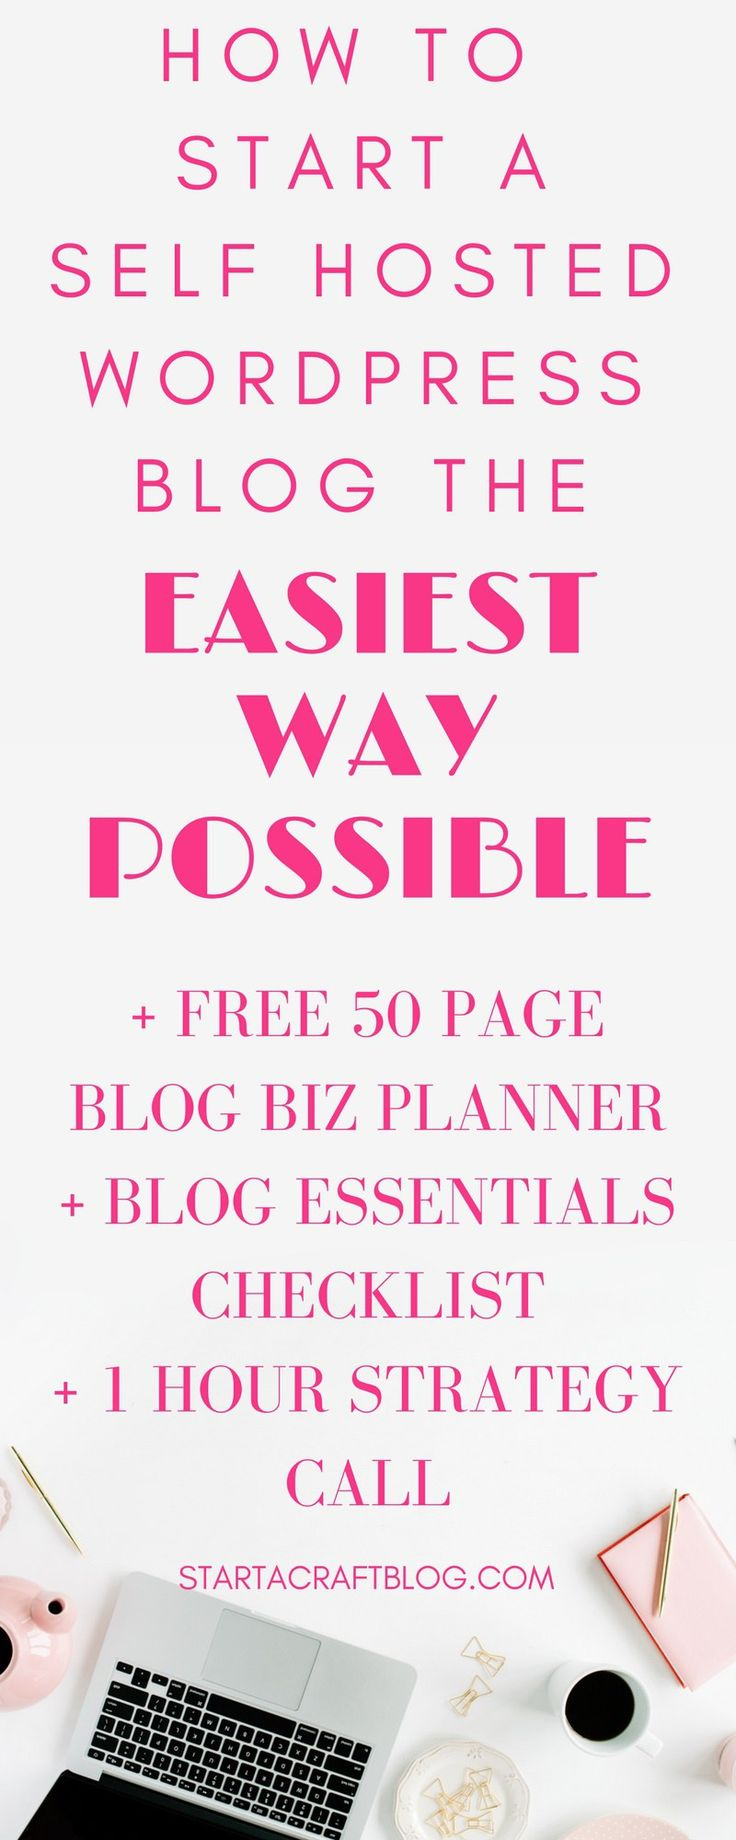 If you want to know how to start a blog in 2017 then you need to read this guide. Let me show you how to create a blog using Siteground shared hosting in under 5 minutes WITH a free video tutorial, Siteground discount coupons AND a how to start a blog che